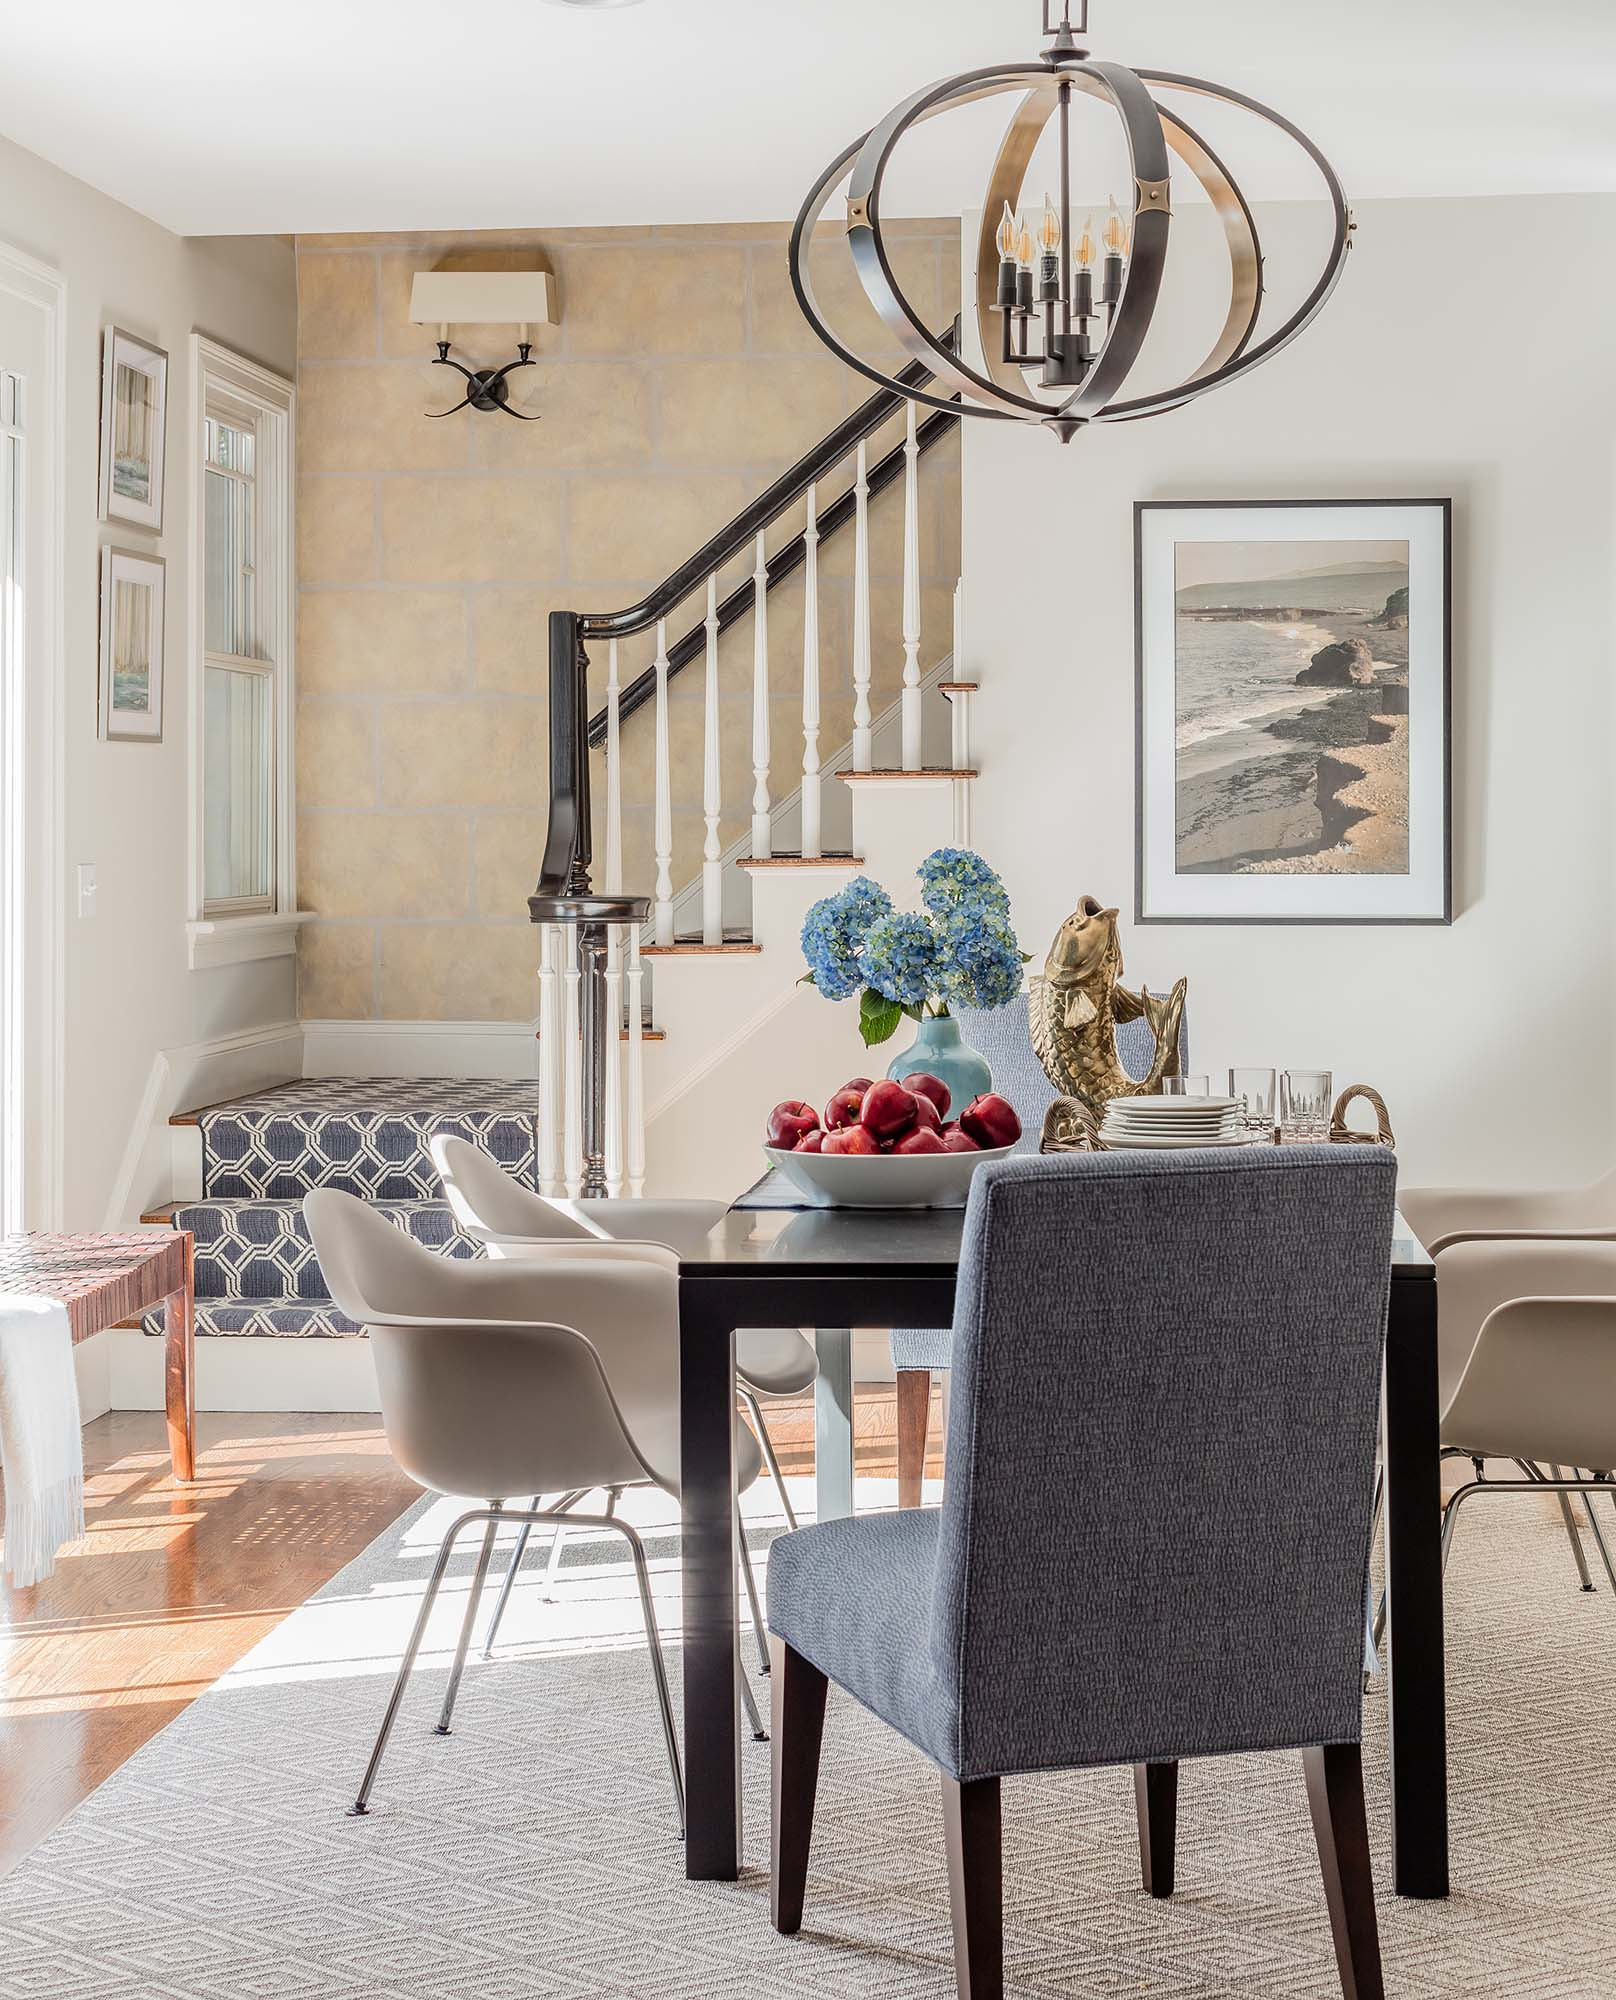 House interior with white walls, wooden table, chairs, and stairway, mitchell gold bob williams, anthony chair, eames, molded plastic chair, parsons table, parson table, currey, currey and company, huntsman, chandelier